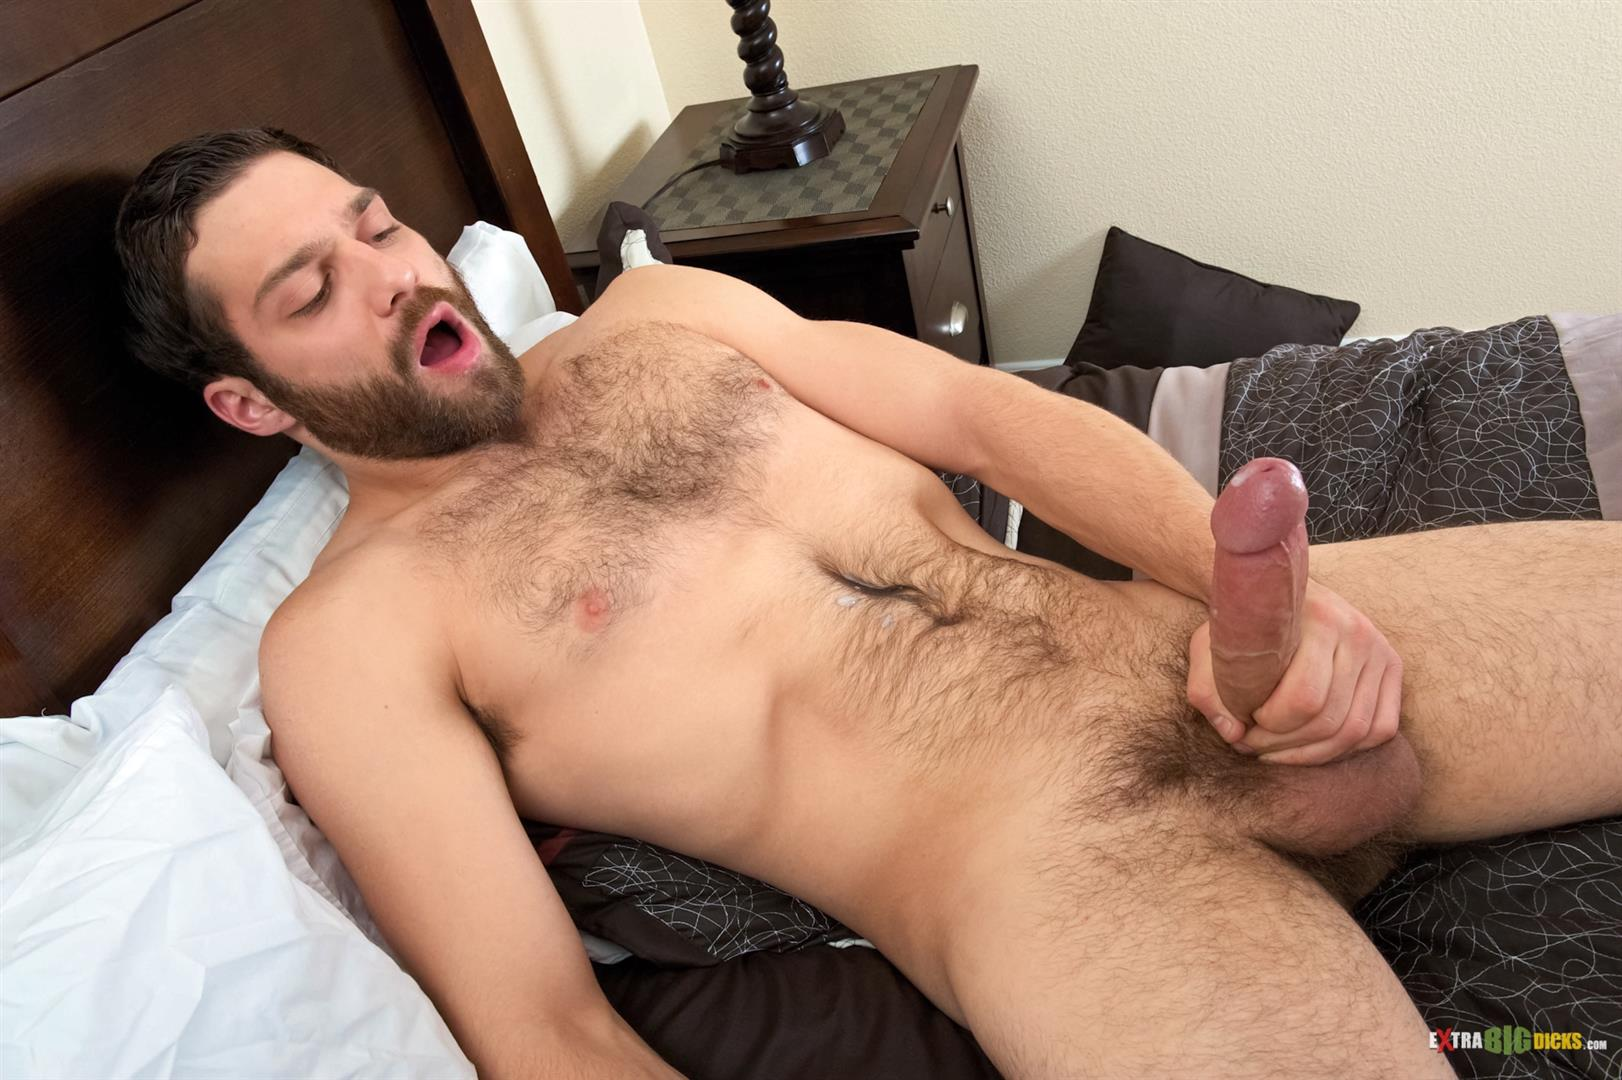 Extra-Big-Dicks-Tommy-Defendi-Hairy-Muscle-Guy-Jerking-Off-Amateur-Gay-Porn-14 Hairy Muscle Stud Tommy Defendi Jerking Off His Big Thick Cock